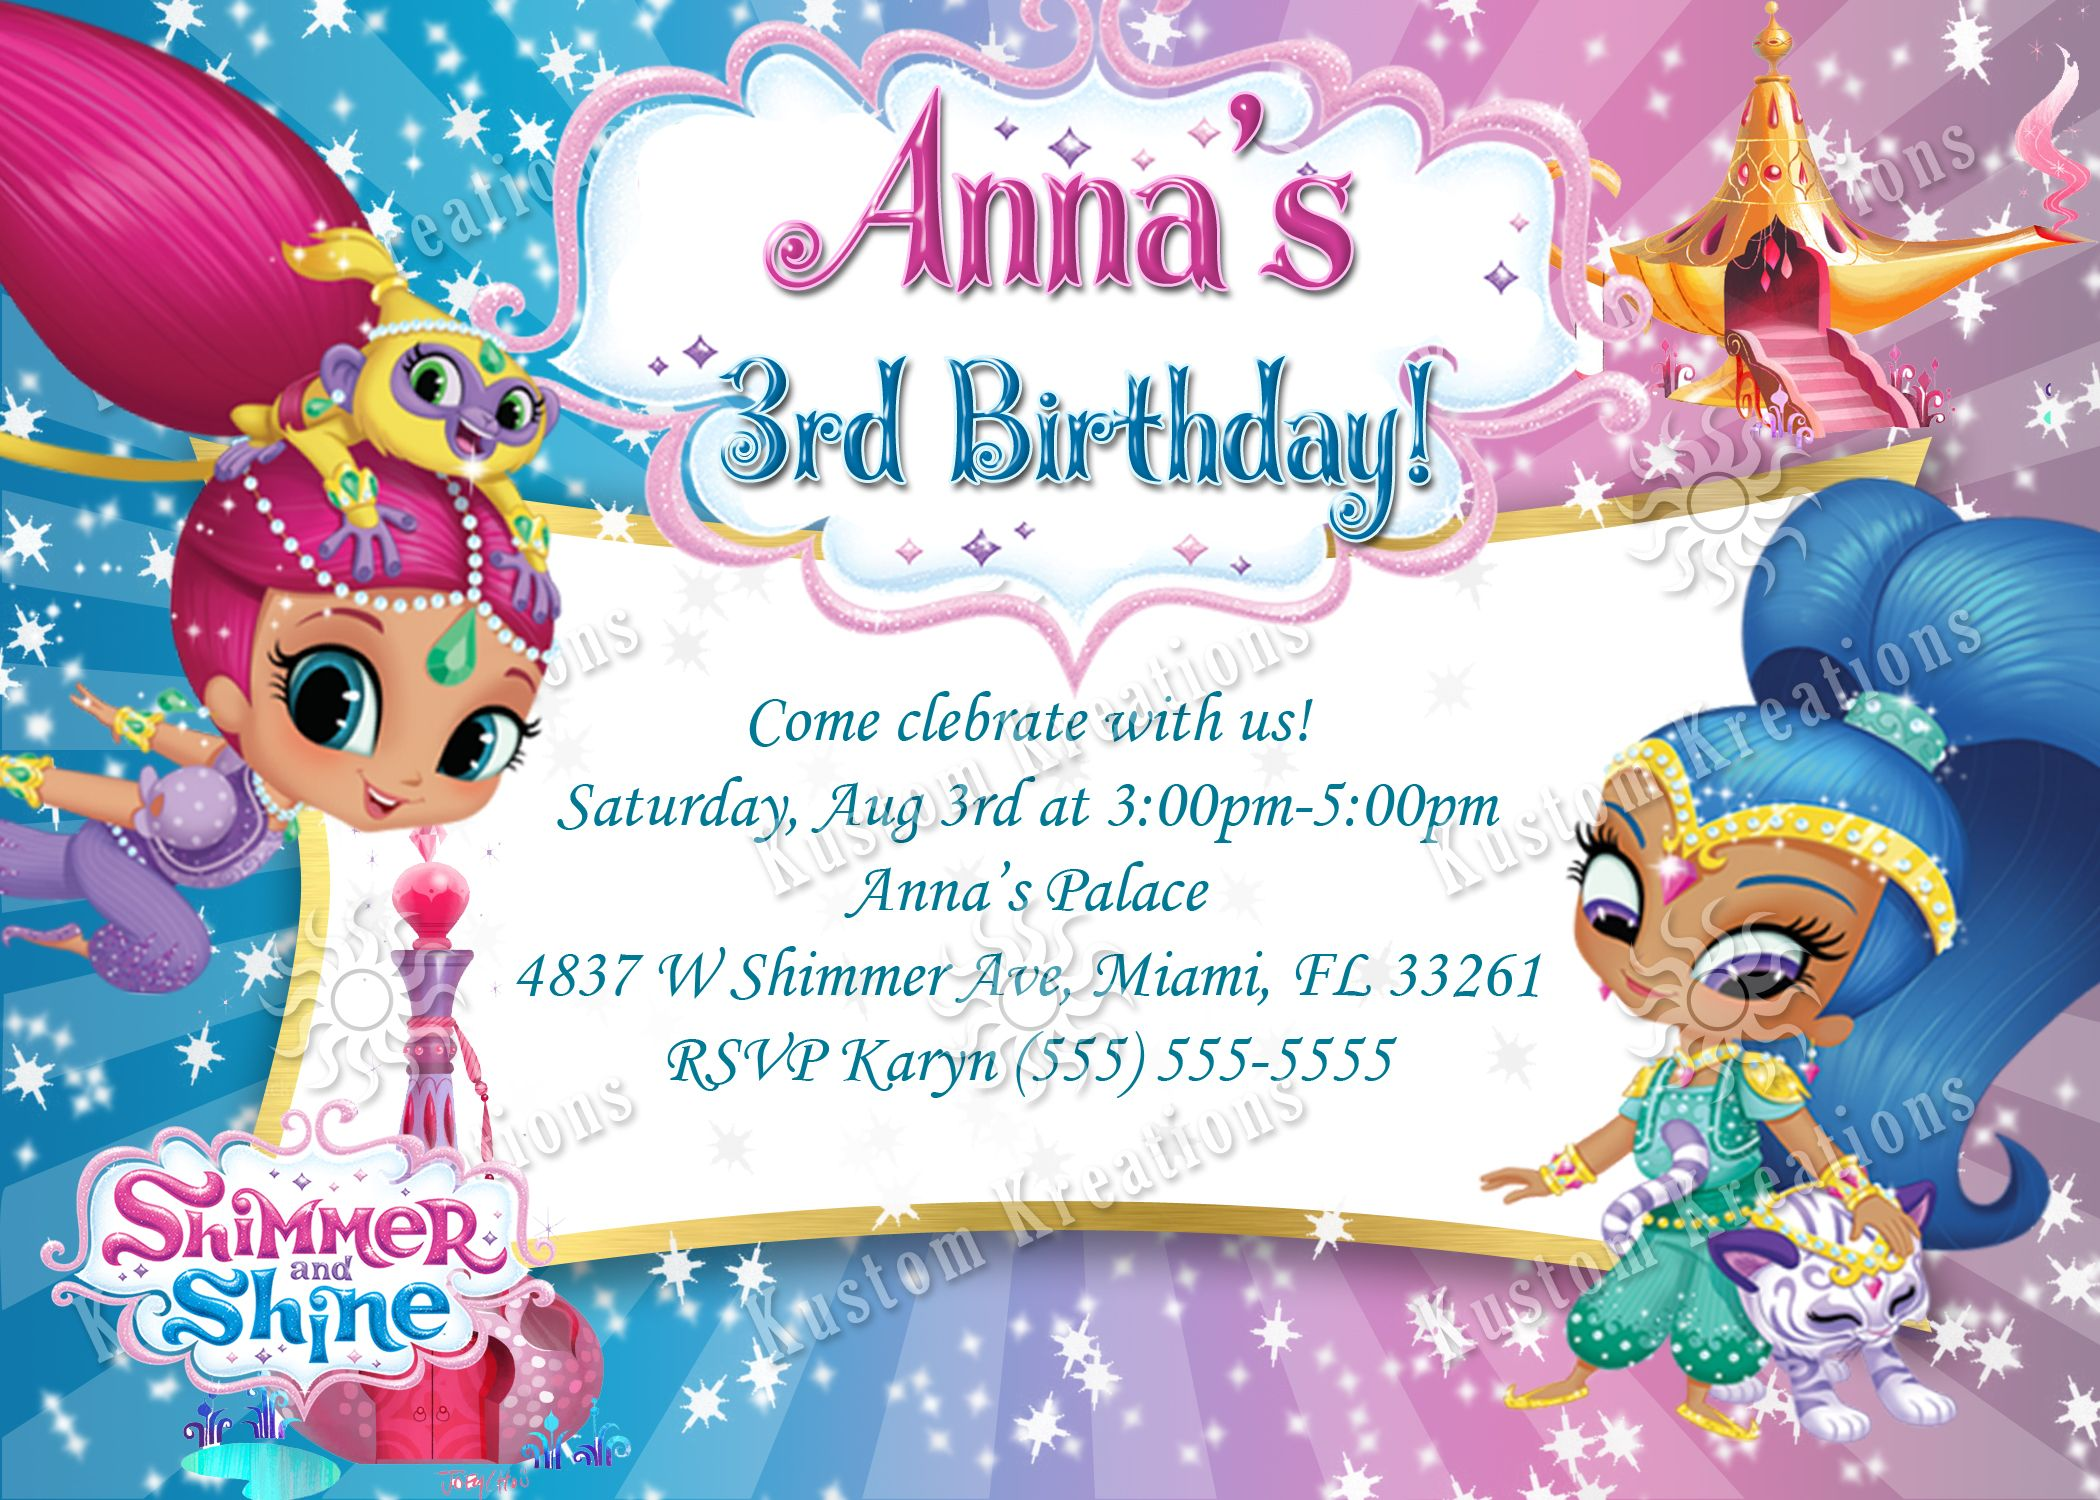 Shimmer and Shine Birthday Invitation | Free printable invitations ...